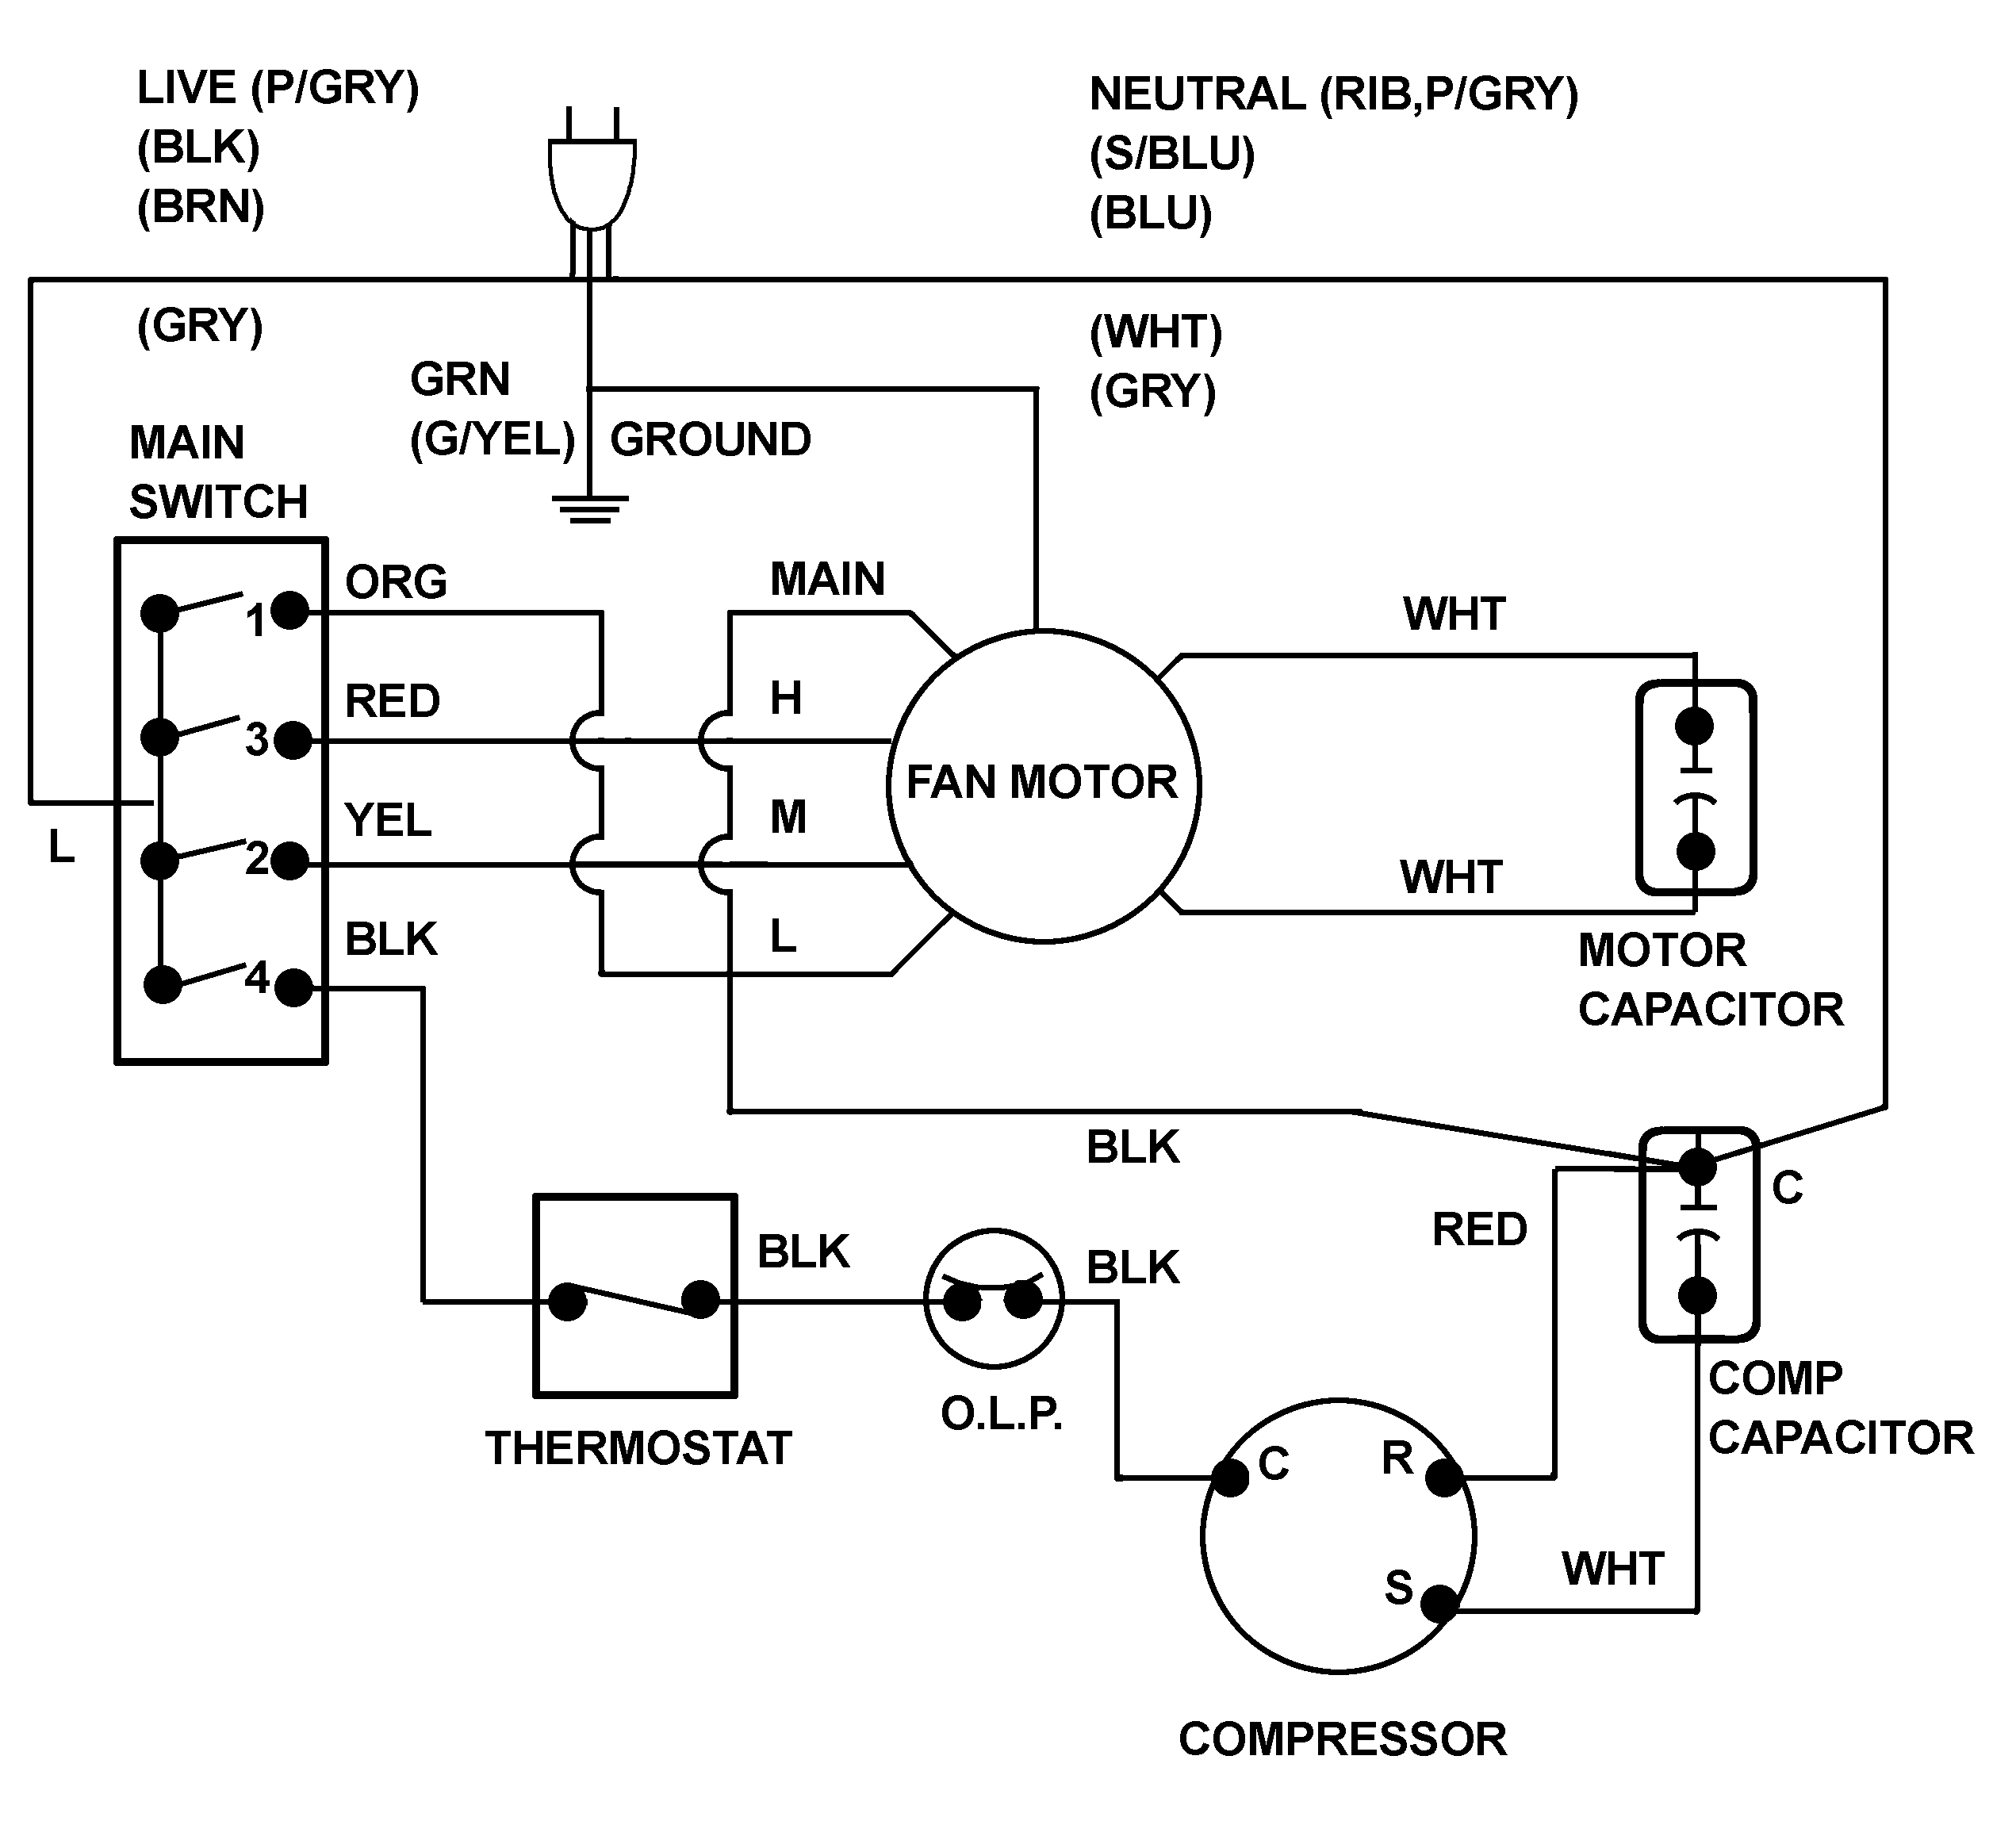 wiring diagram for aircon diagram data schemabasic air conditioner wiring diagram wiring diagram data schema wiring diagram for split type aircon wiring diagram for aircon